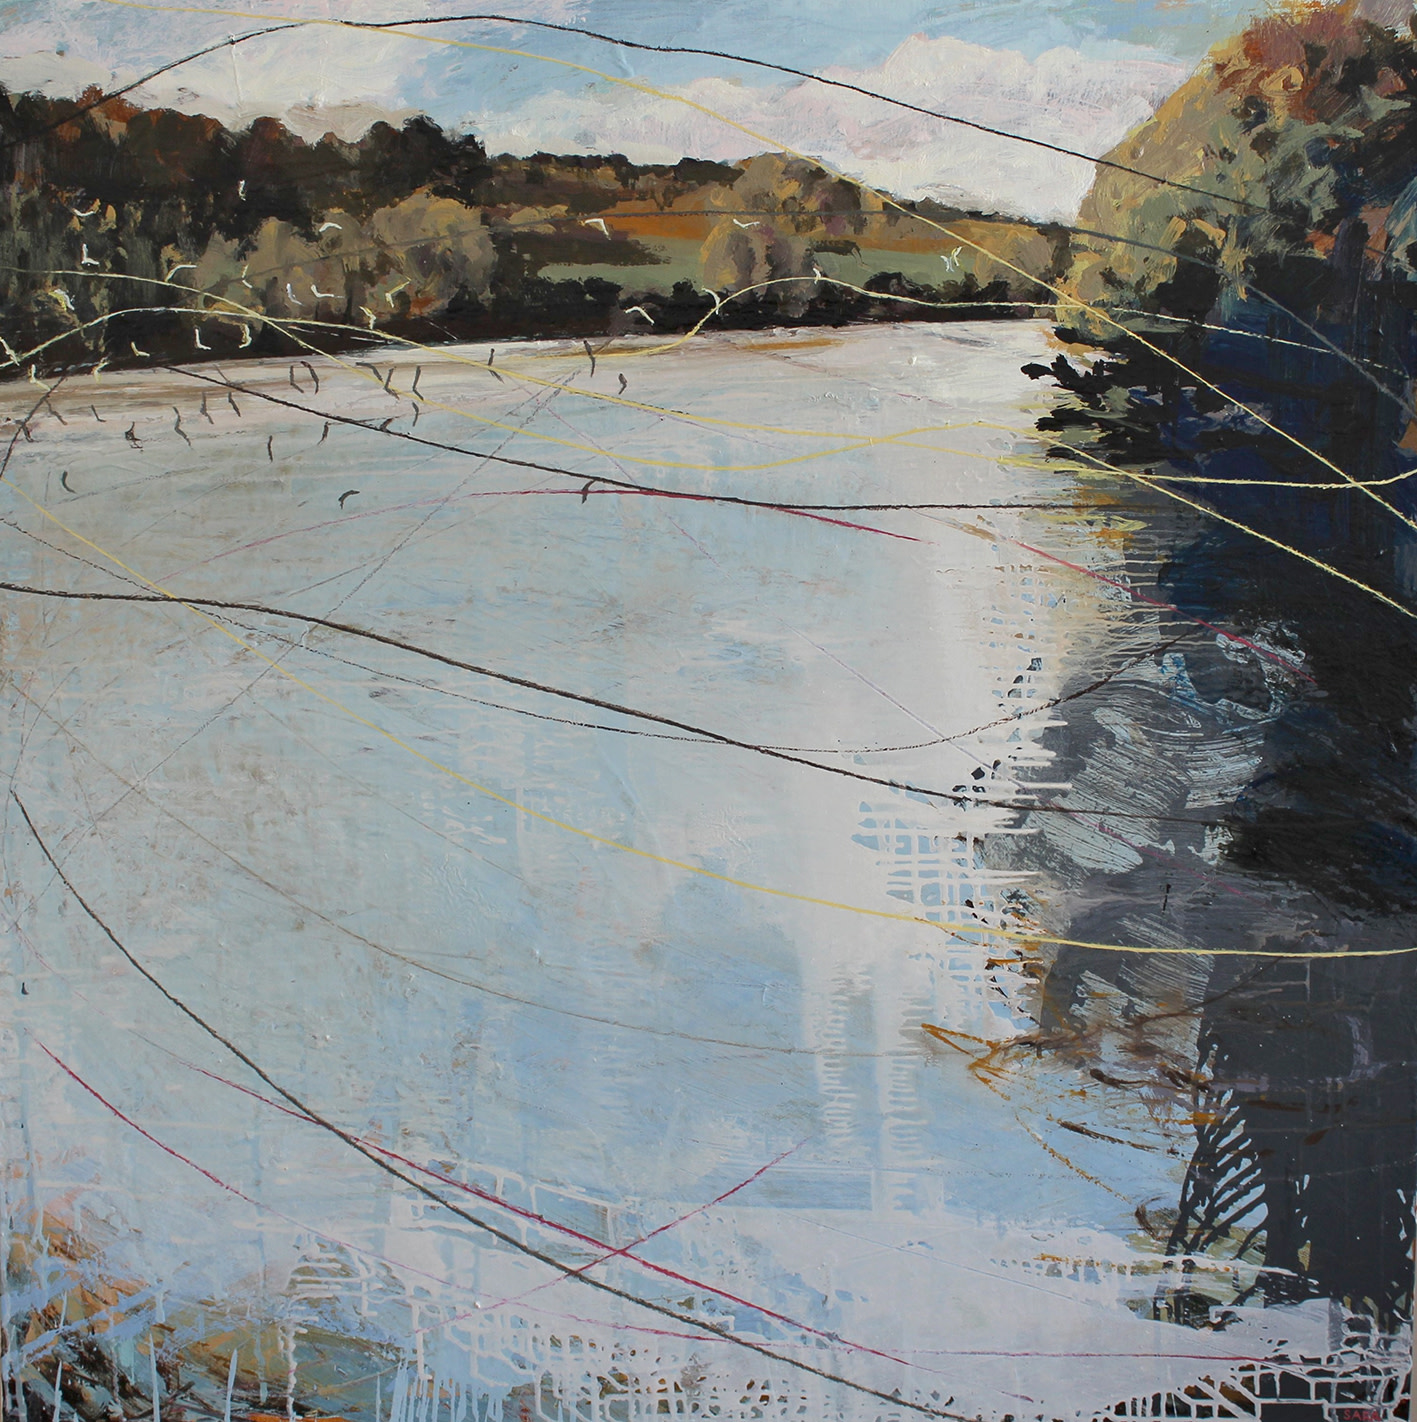 "<span class=""link fancybox-details-link""><a href=""/artists/159-sara-dudman-rwa/works/7041-sara-dudman-rwa-herring-gulls-helford-river-2-2020/"">View Detail Page</a></span><div class=""artist""><strong>Sara Dudman RWA</strong></div> <div class=""title""><em>Herring Gulls (Helford River) 2</em>, 2020</div> <div class=""medium"">Oil on Canvas </div> <div class=""dimensions"">92cm x 92cm (unframed)<br /> 96cm x 96cm tray framed</div><div class=""price"">£2,300.00</div><div class=""copyright_line"">Own Art £230 x 10 months, 0% finance.</div>"